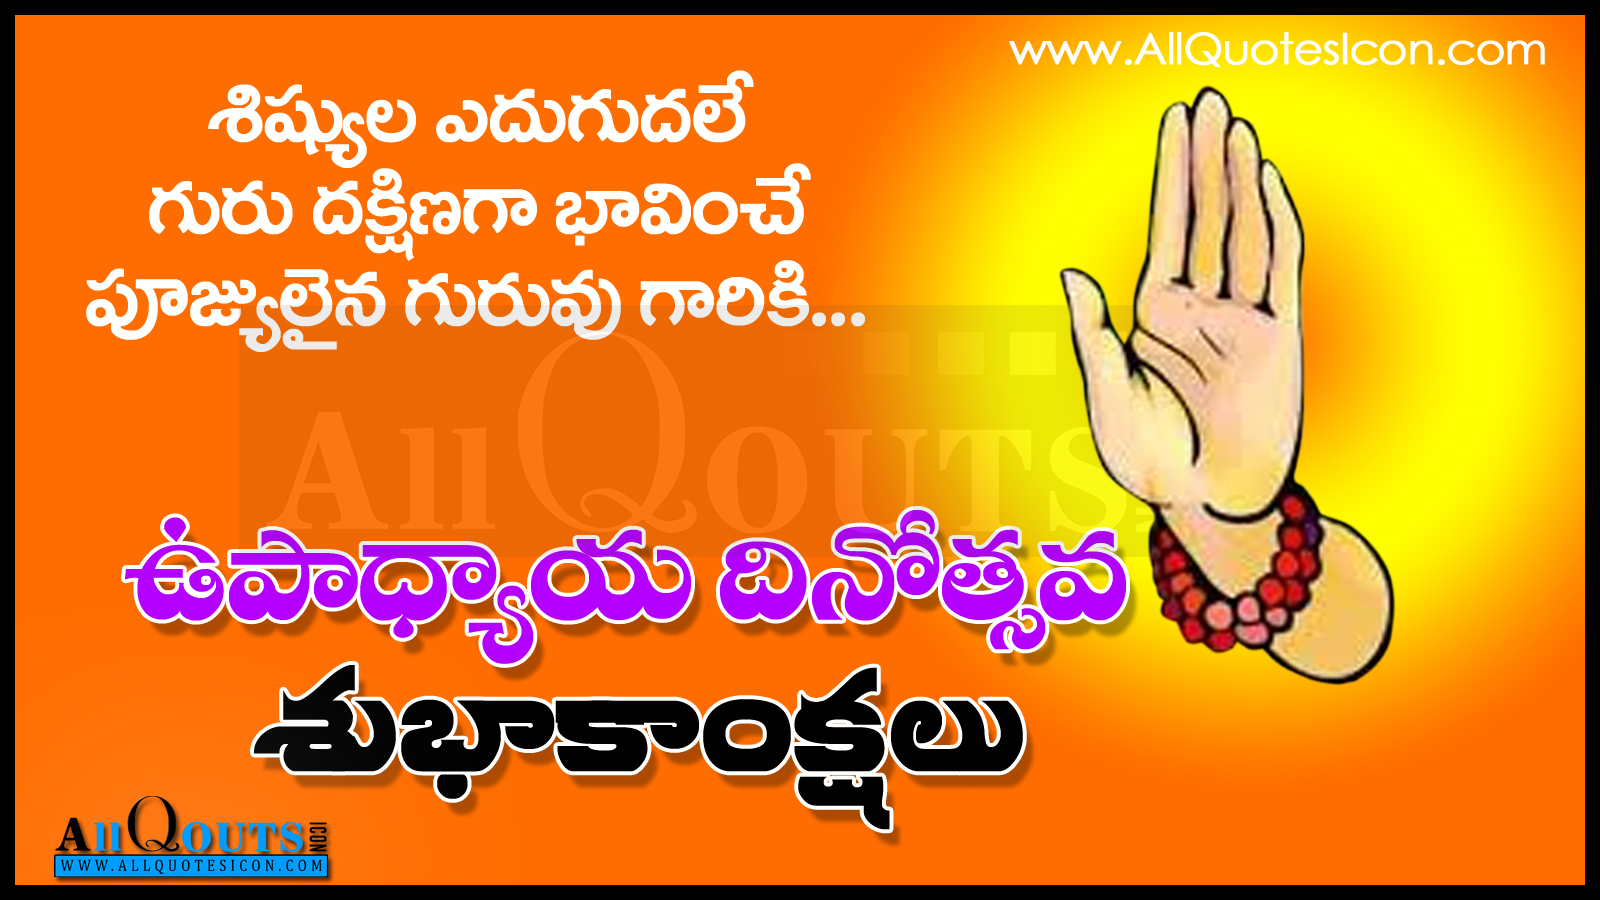 Happy teachers day quotes in telugu hd wallpapers best teachers day happy teachers day teachers day 2015 teachers day speech teachers day quotes kristyandbryce Choice Image